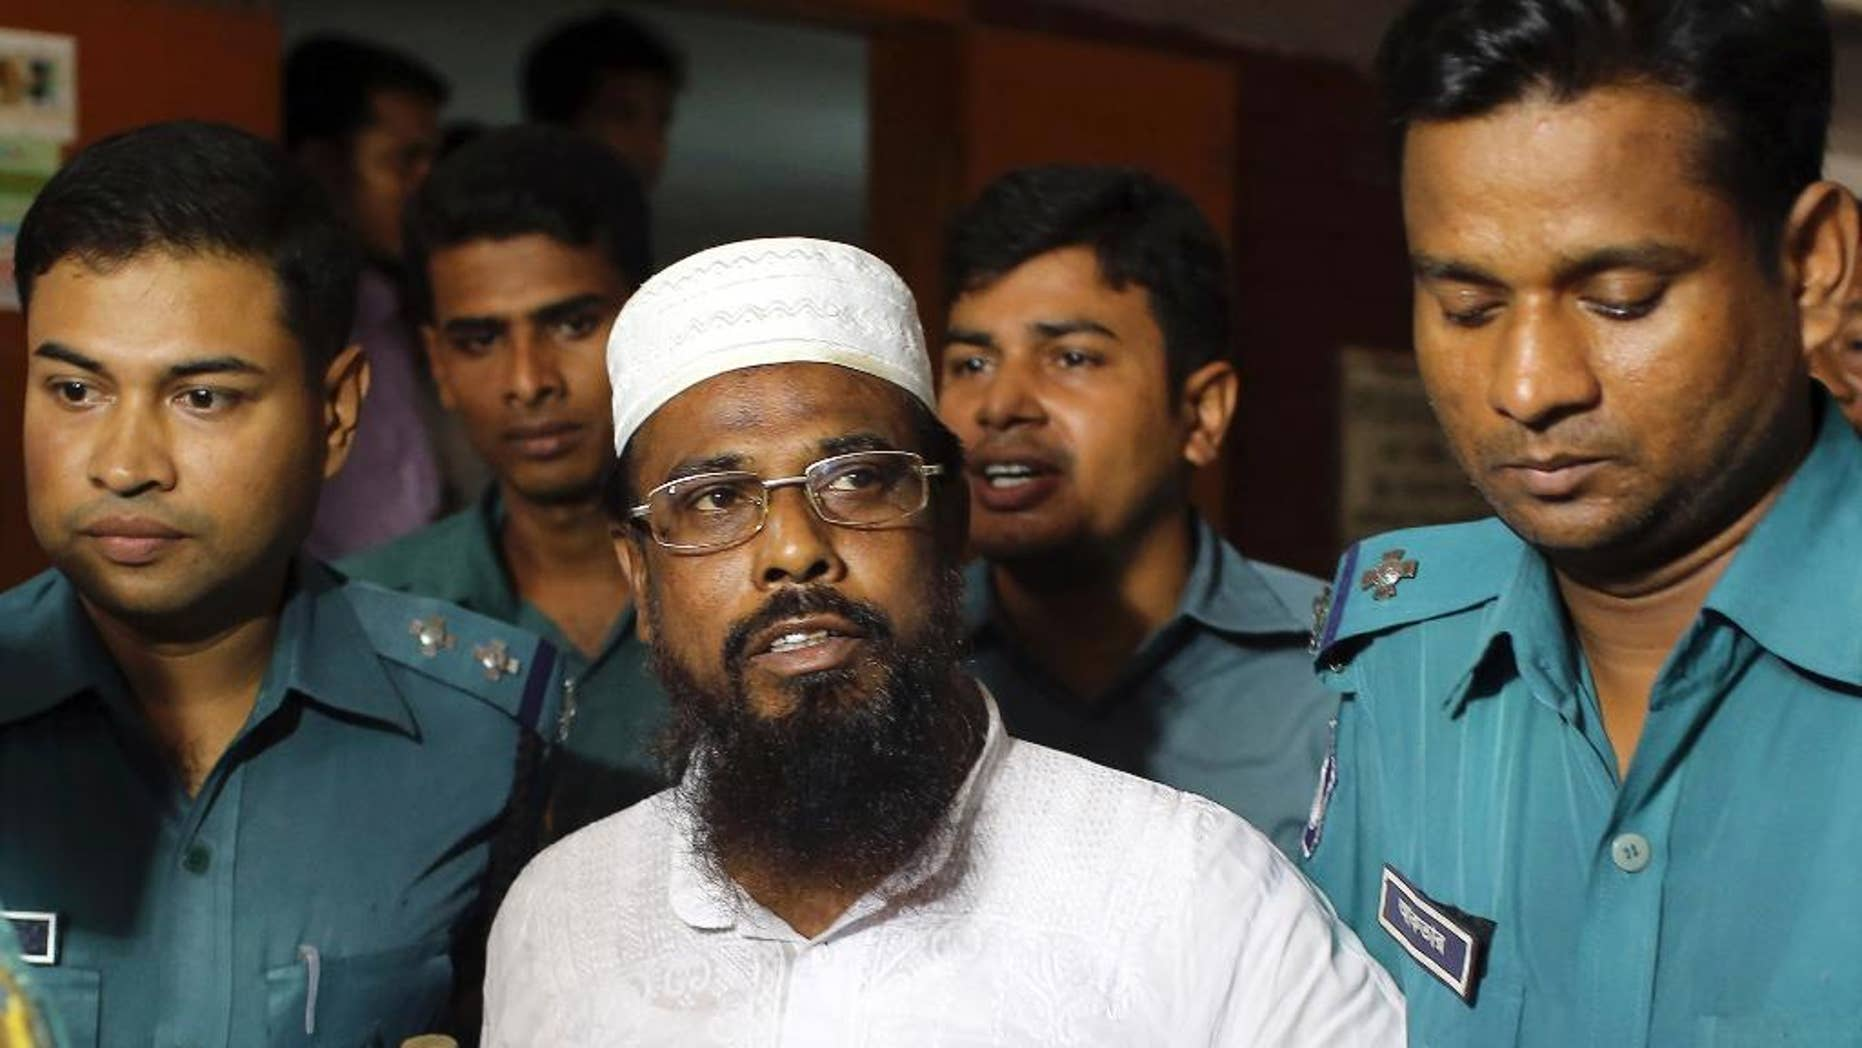 FILE - In this June 16, 2014 file photo, Mufti Abdul Hannan, center, leader of banned radical group Harkatul Jihad al Islami, stands at a court in Dhaka, Bangladesh. Authorities in Bangladesh have executed Hannan and two accomplices for their involvement in a grenade attack against a British diplomat at a popular Islamic shrine in 2004. (AP Photo/A.M. Ahad, File)